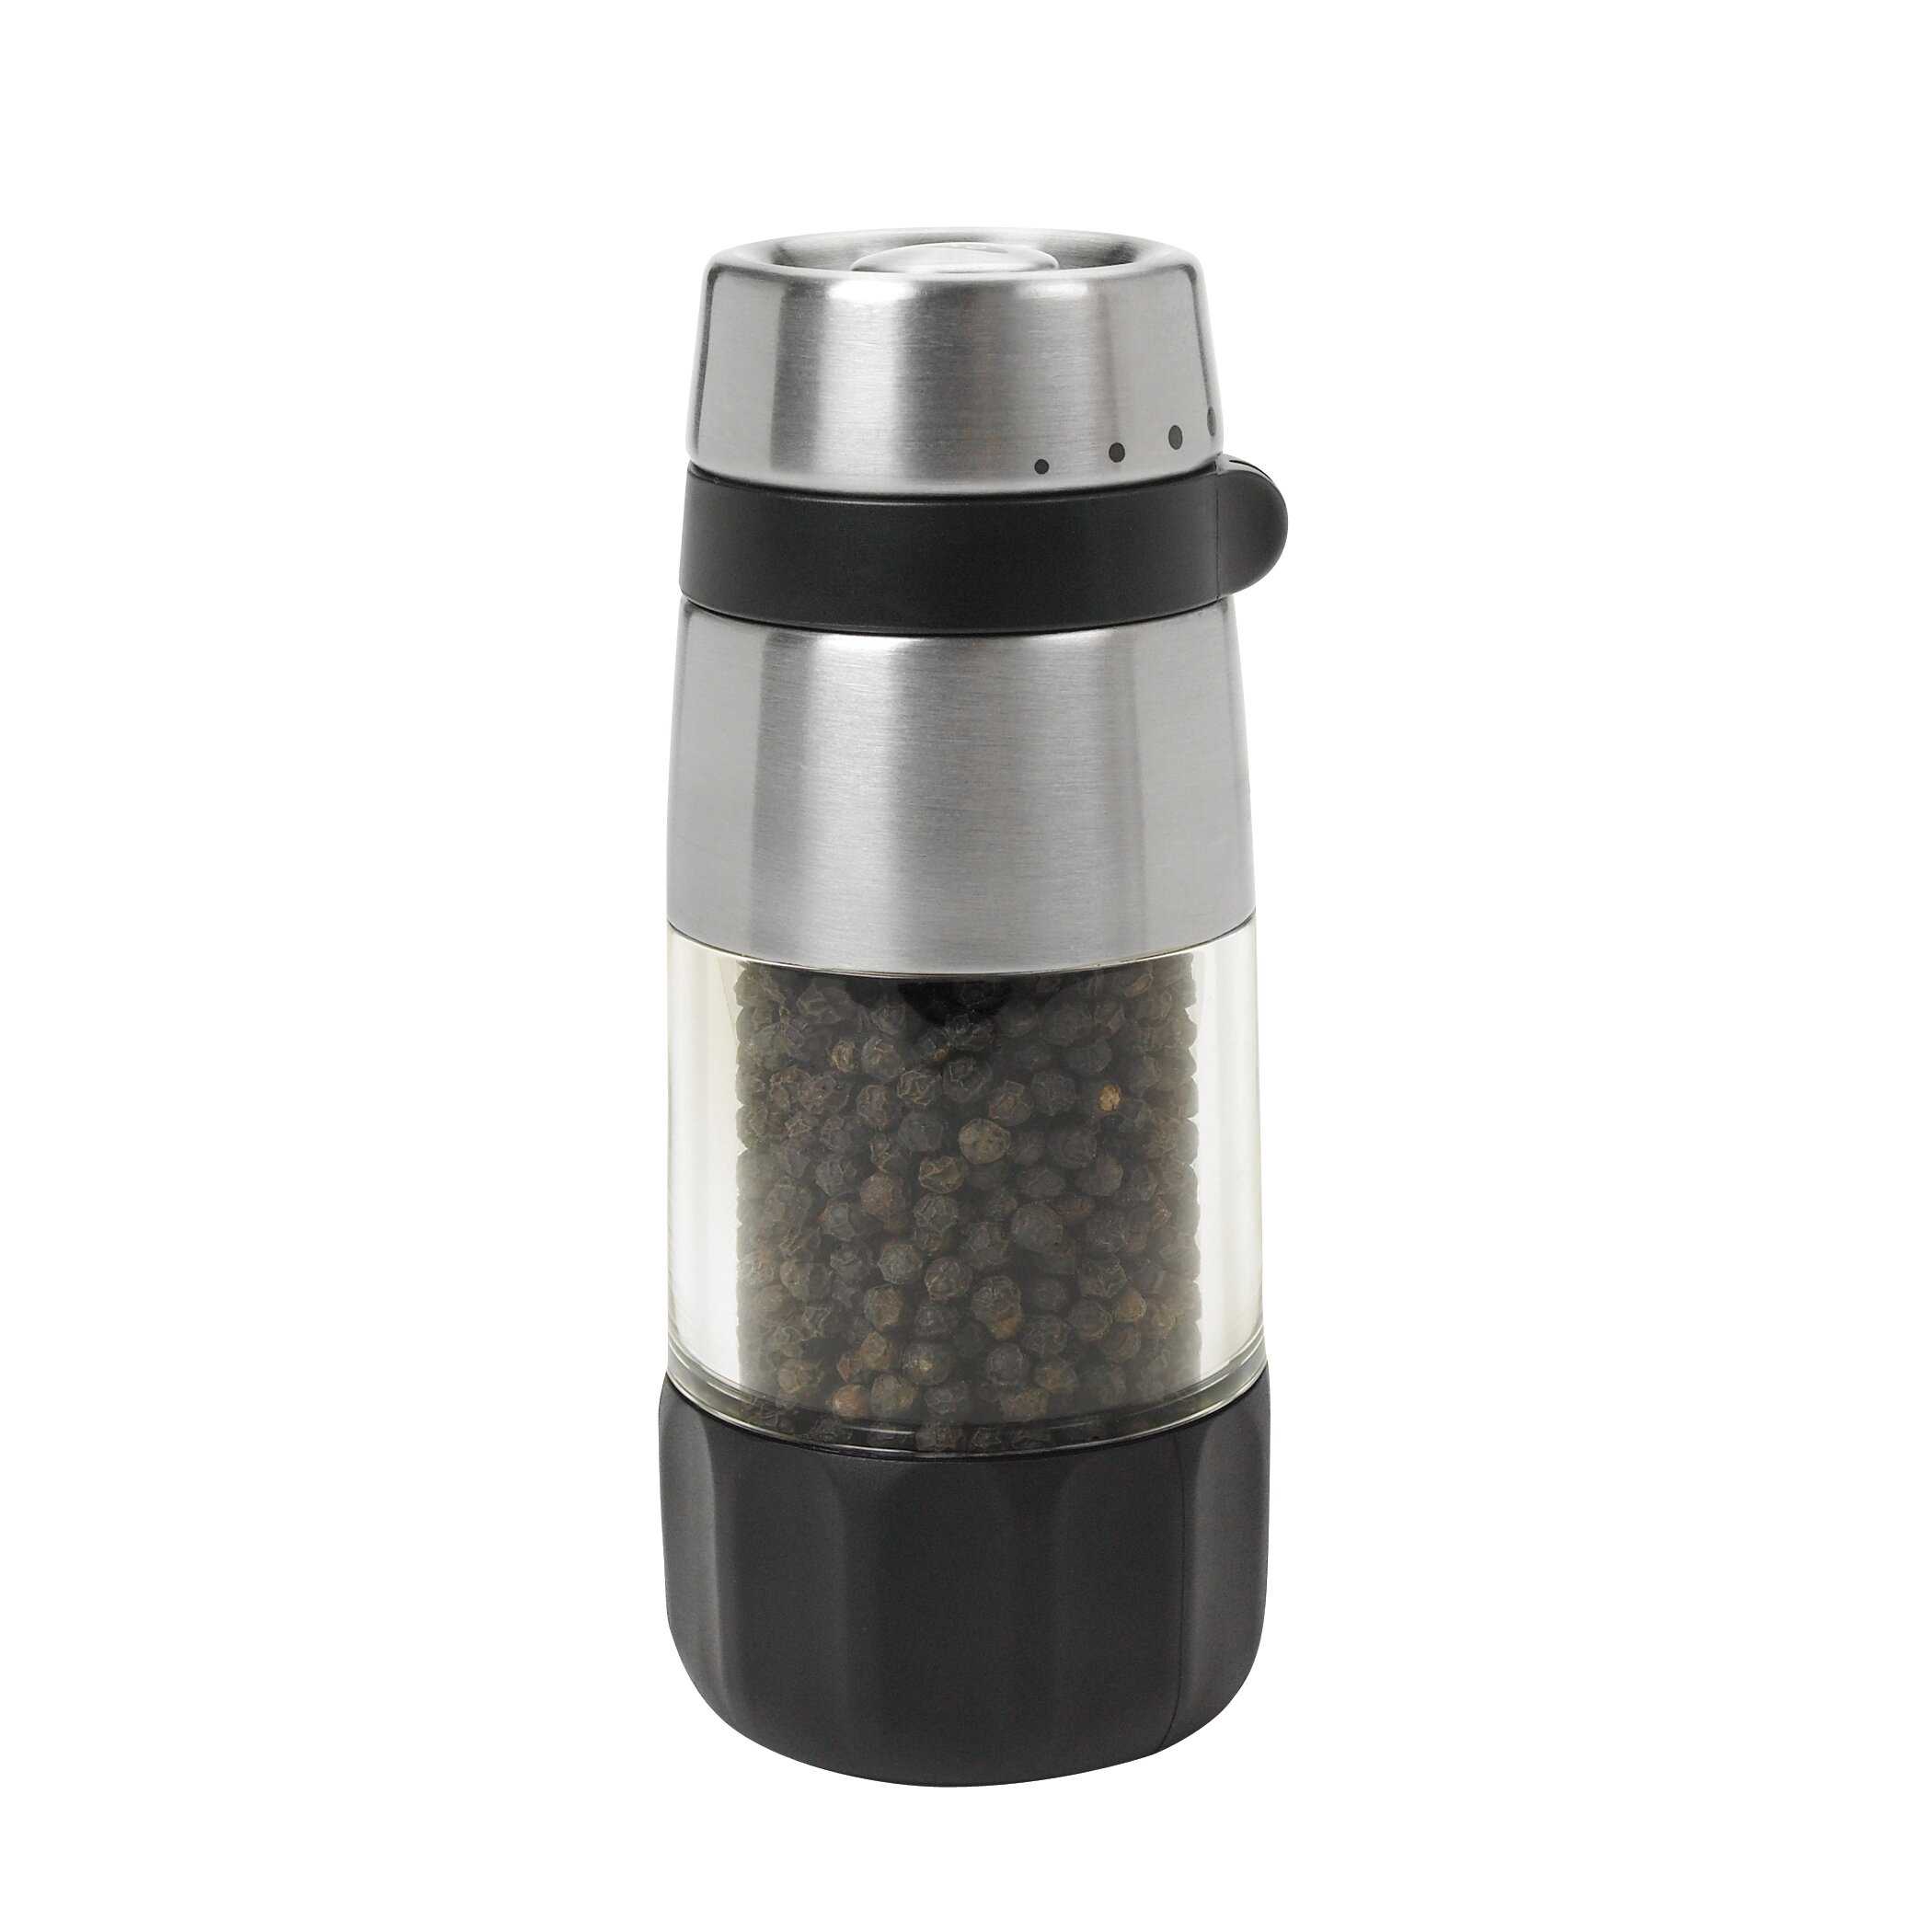 Oxo Good Grips Pepper Grinder Amp Reviews Wayfair